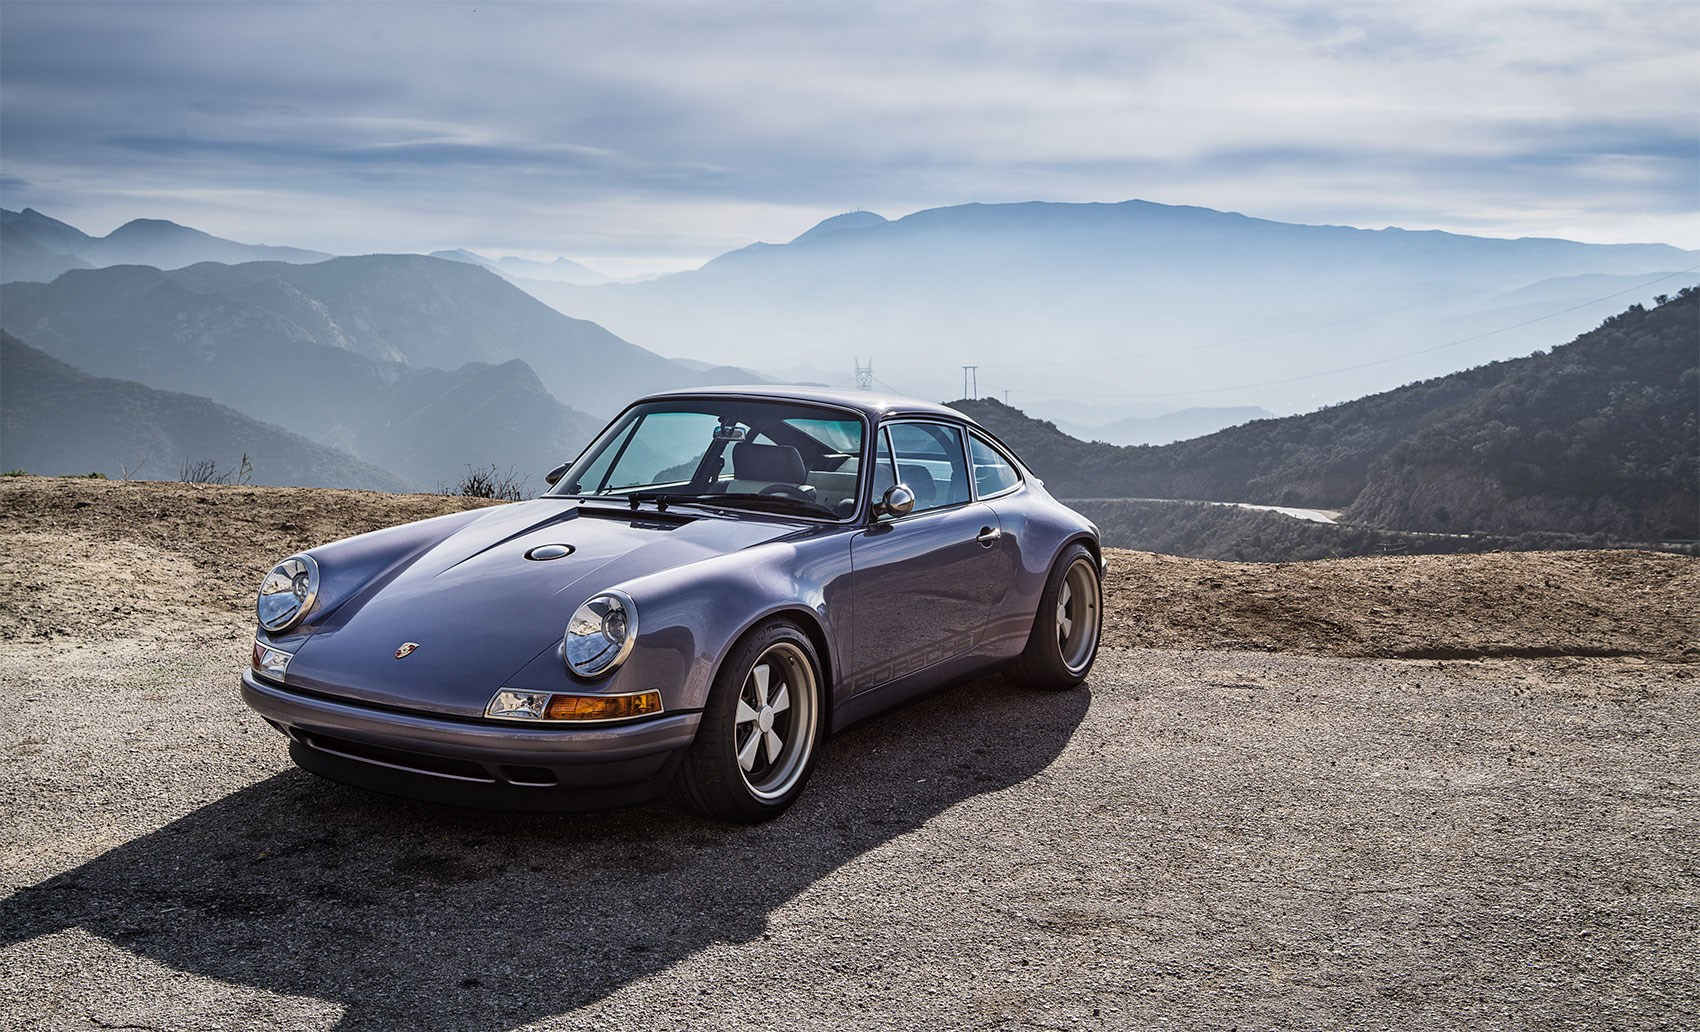 Inside Singer Vehicle Design: the Porsche 911 experts | CAR